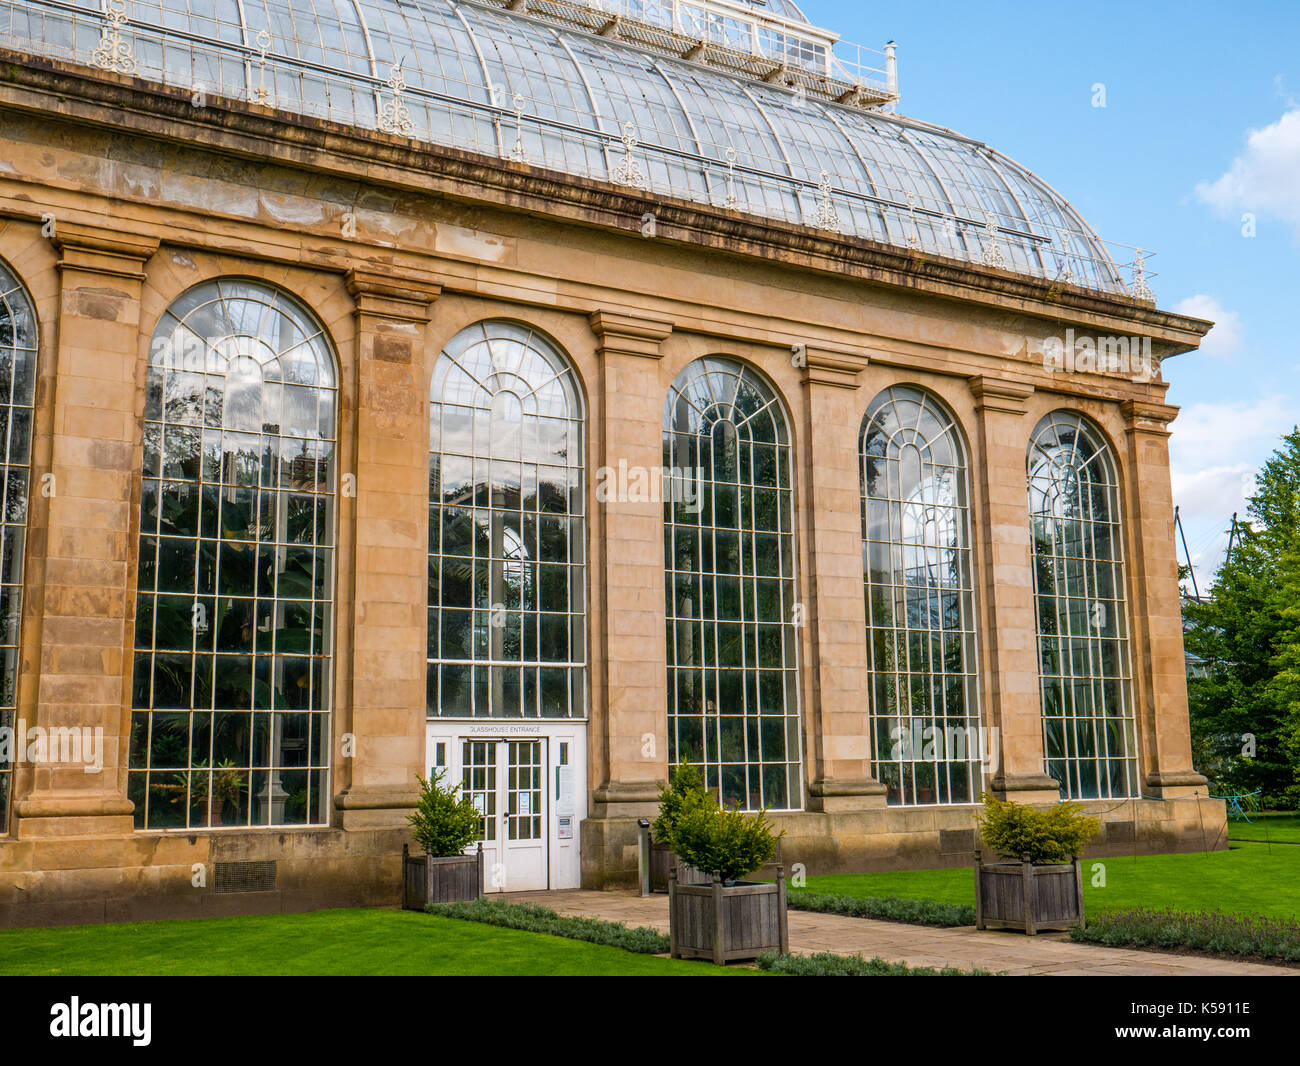 The Glass Houses, Royal Botanic Garden Edinburgh, Edinburgh, Scotland - Stock Image